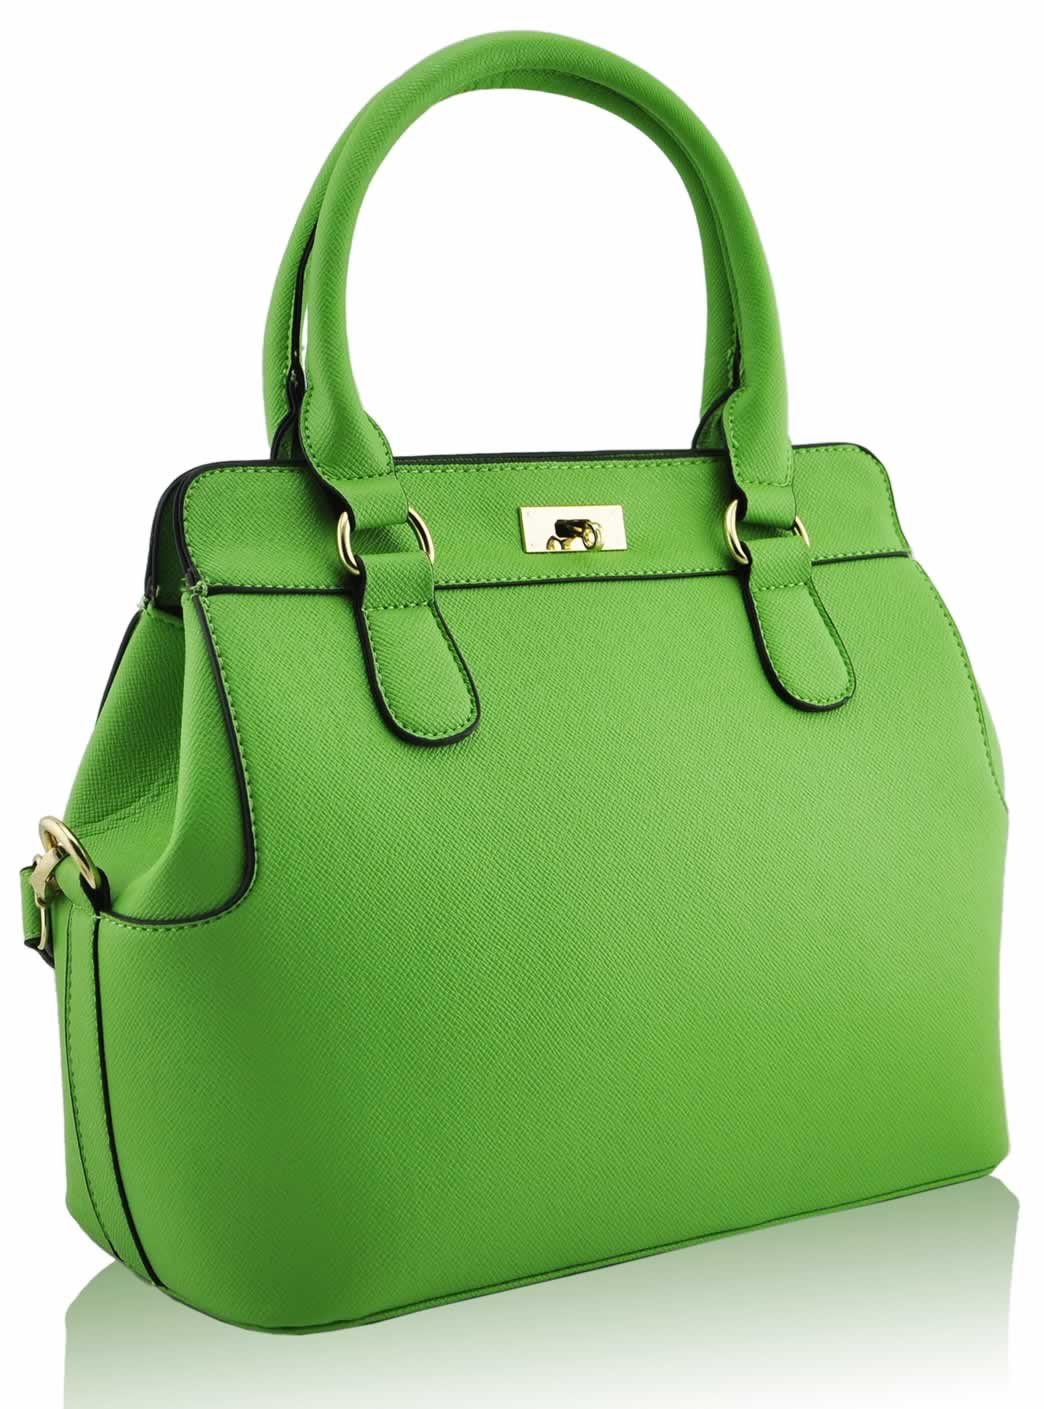 wholesale green fashion tote handbag. Black Bedroom Furniture Sets. Home Design Ideas